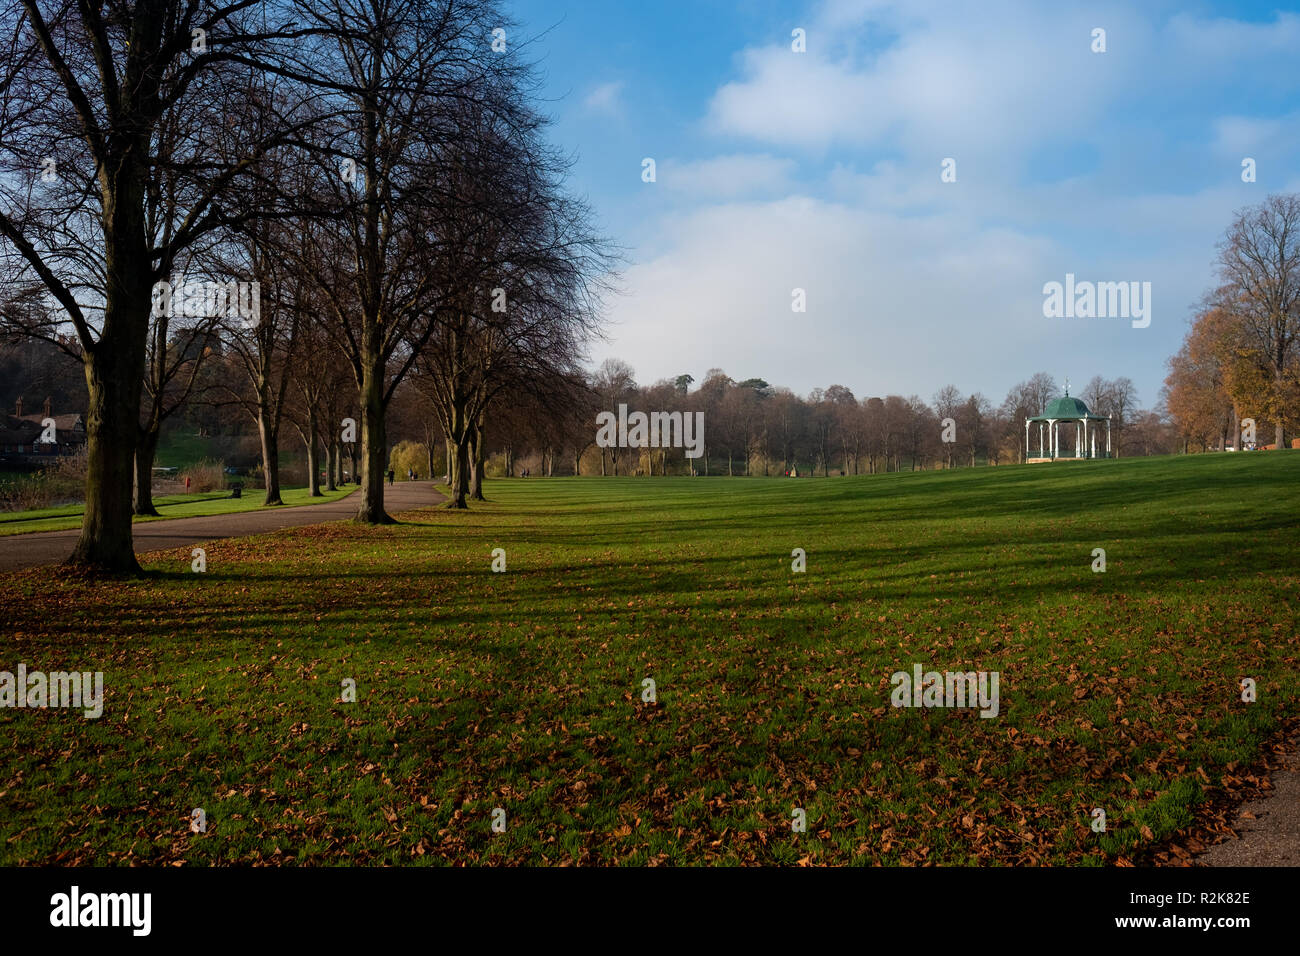 Bandstand in Shrewsbury Park on a sunny late autumn, early winter day. - Stock Image